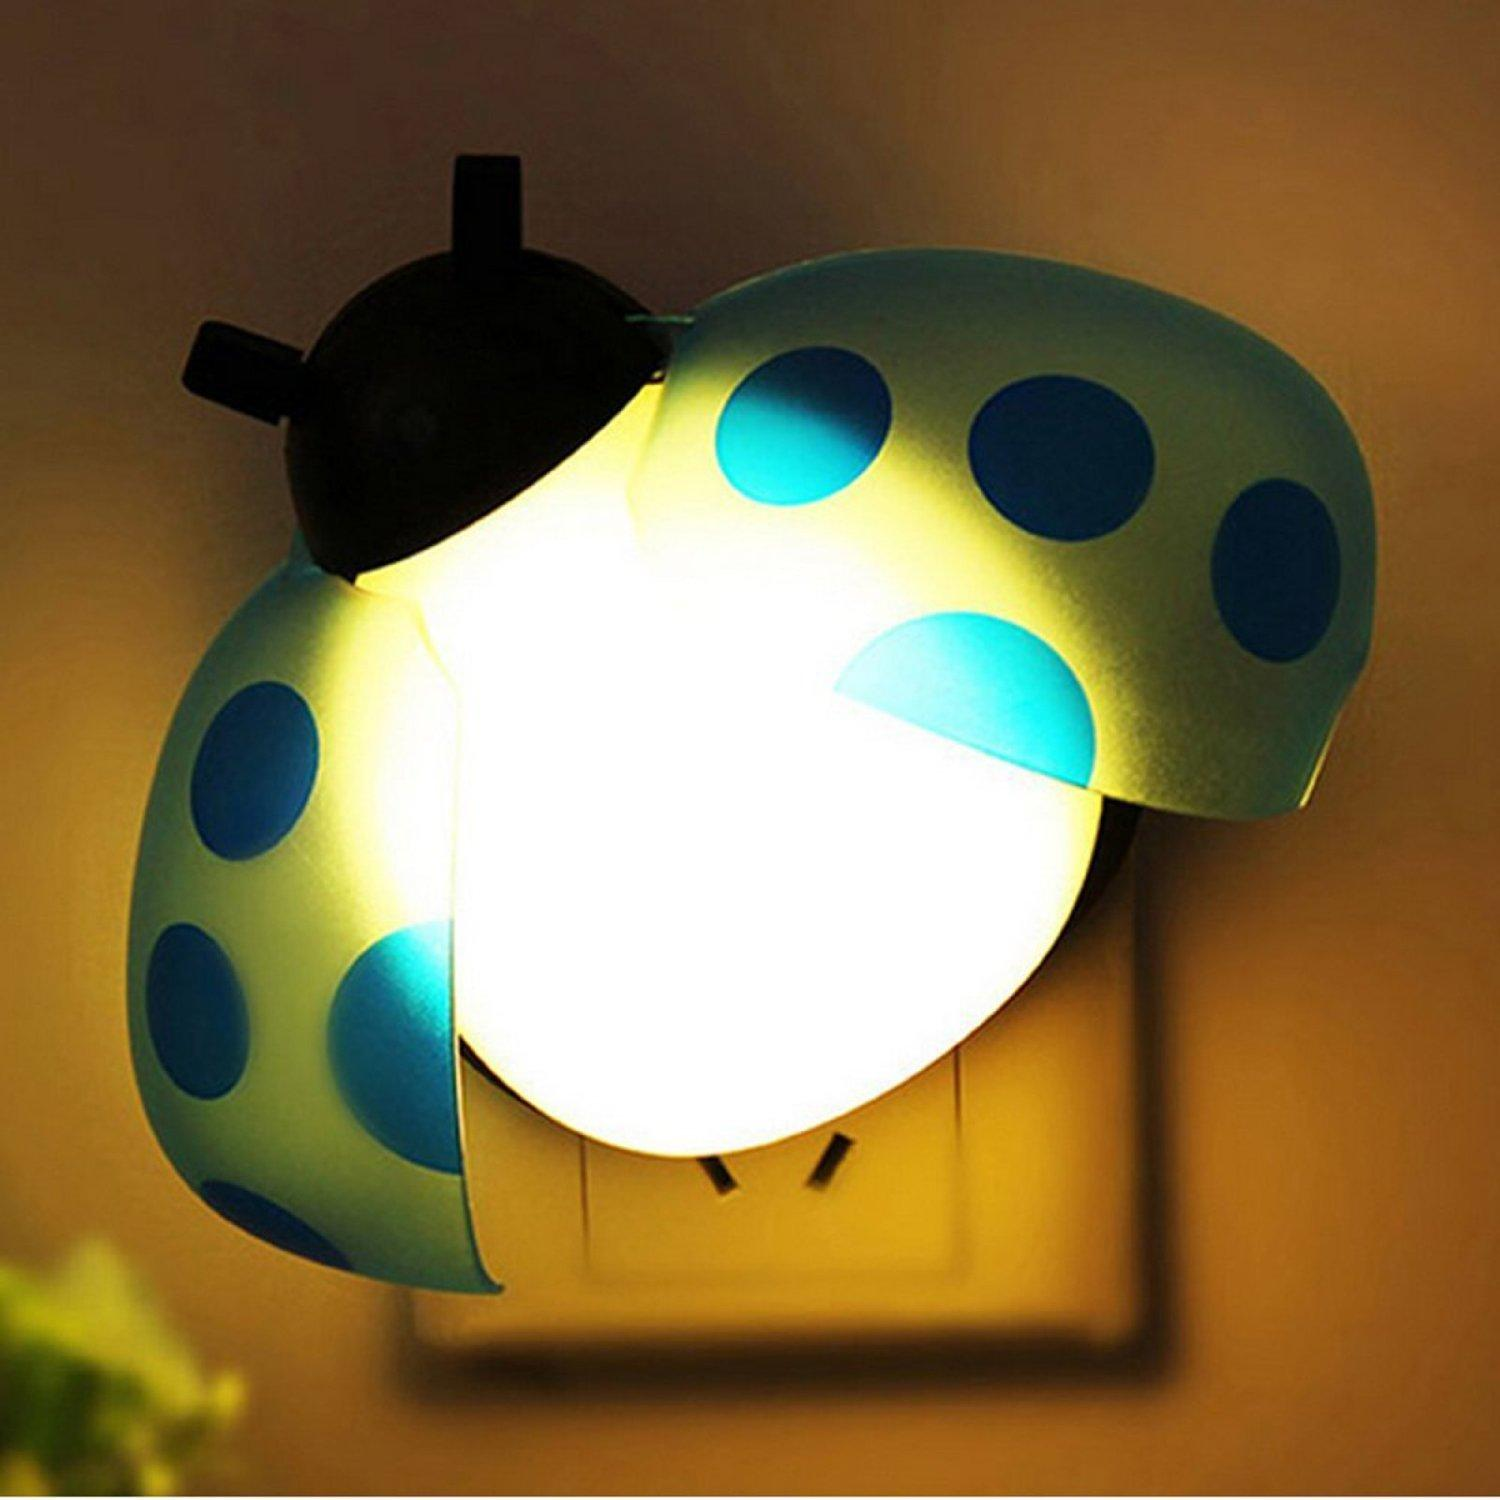 2017 Beatles Cartoon Led Night Light Intelligent Sound Control Put In Wall Lamp With Socket Cute Small Sleep For Living Room Bedroom From